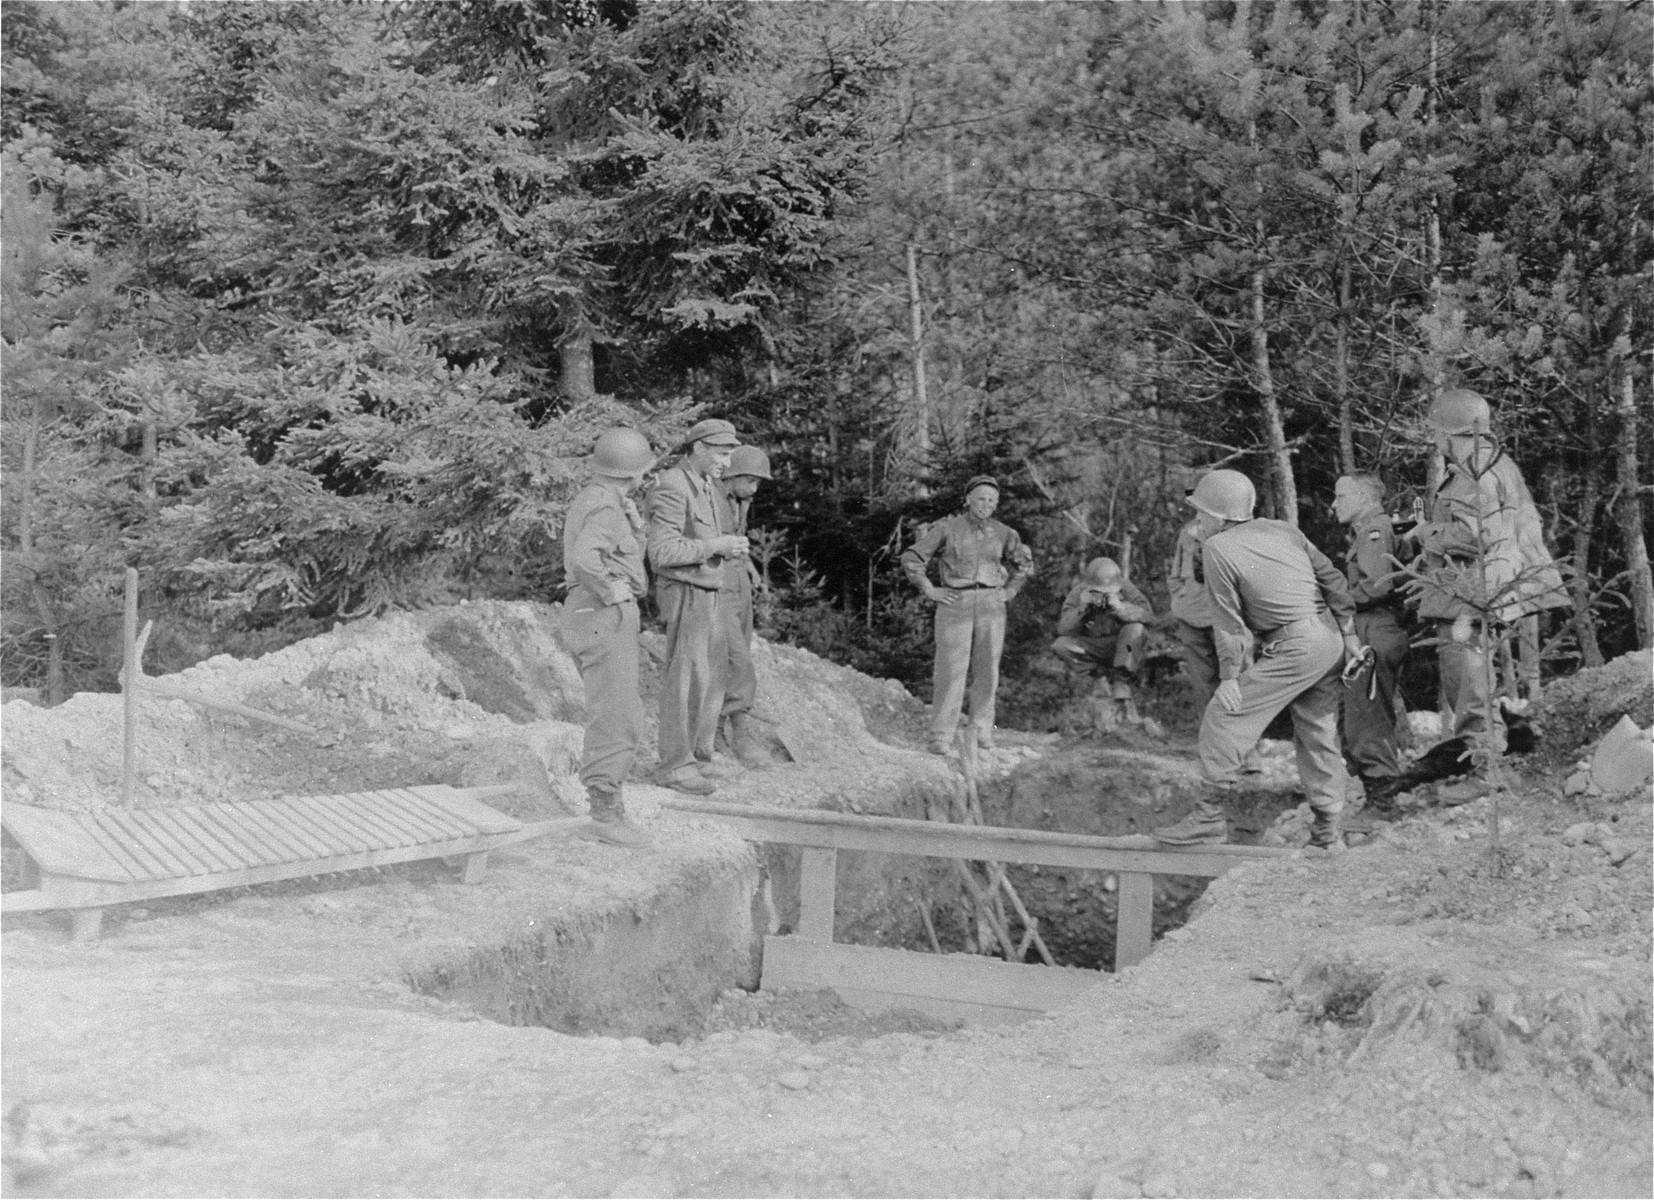 Officers and men of 14th Armoured Division, 3rd U.S. Army, inspect a mass grave in the Ampfing concentration camp alleged to hold 2240 bodies.